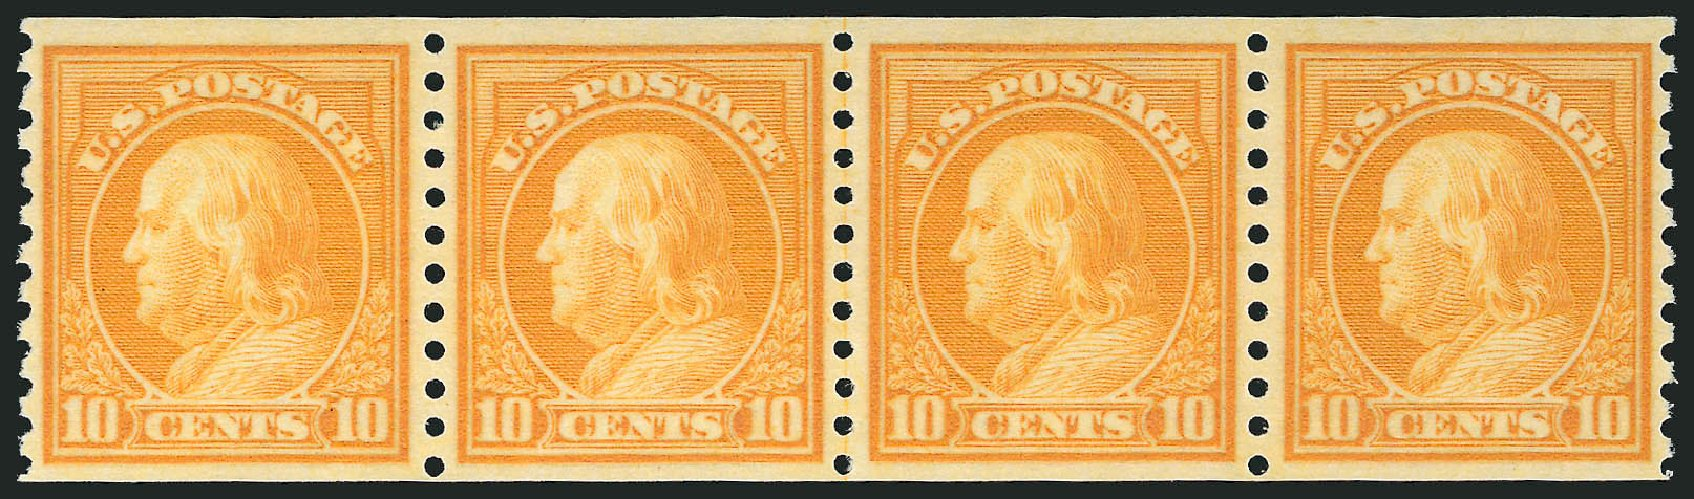 US Stamps Value Scott Catalog # 497 - 10c 1922 Franklin Coil Perf 10 Vertically. Robert Siegel Auction Galleries, Feb 2015, Sale 1093, Lot 438